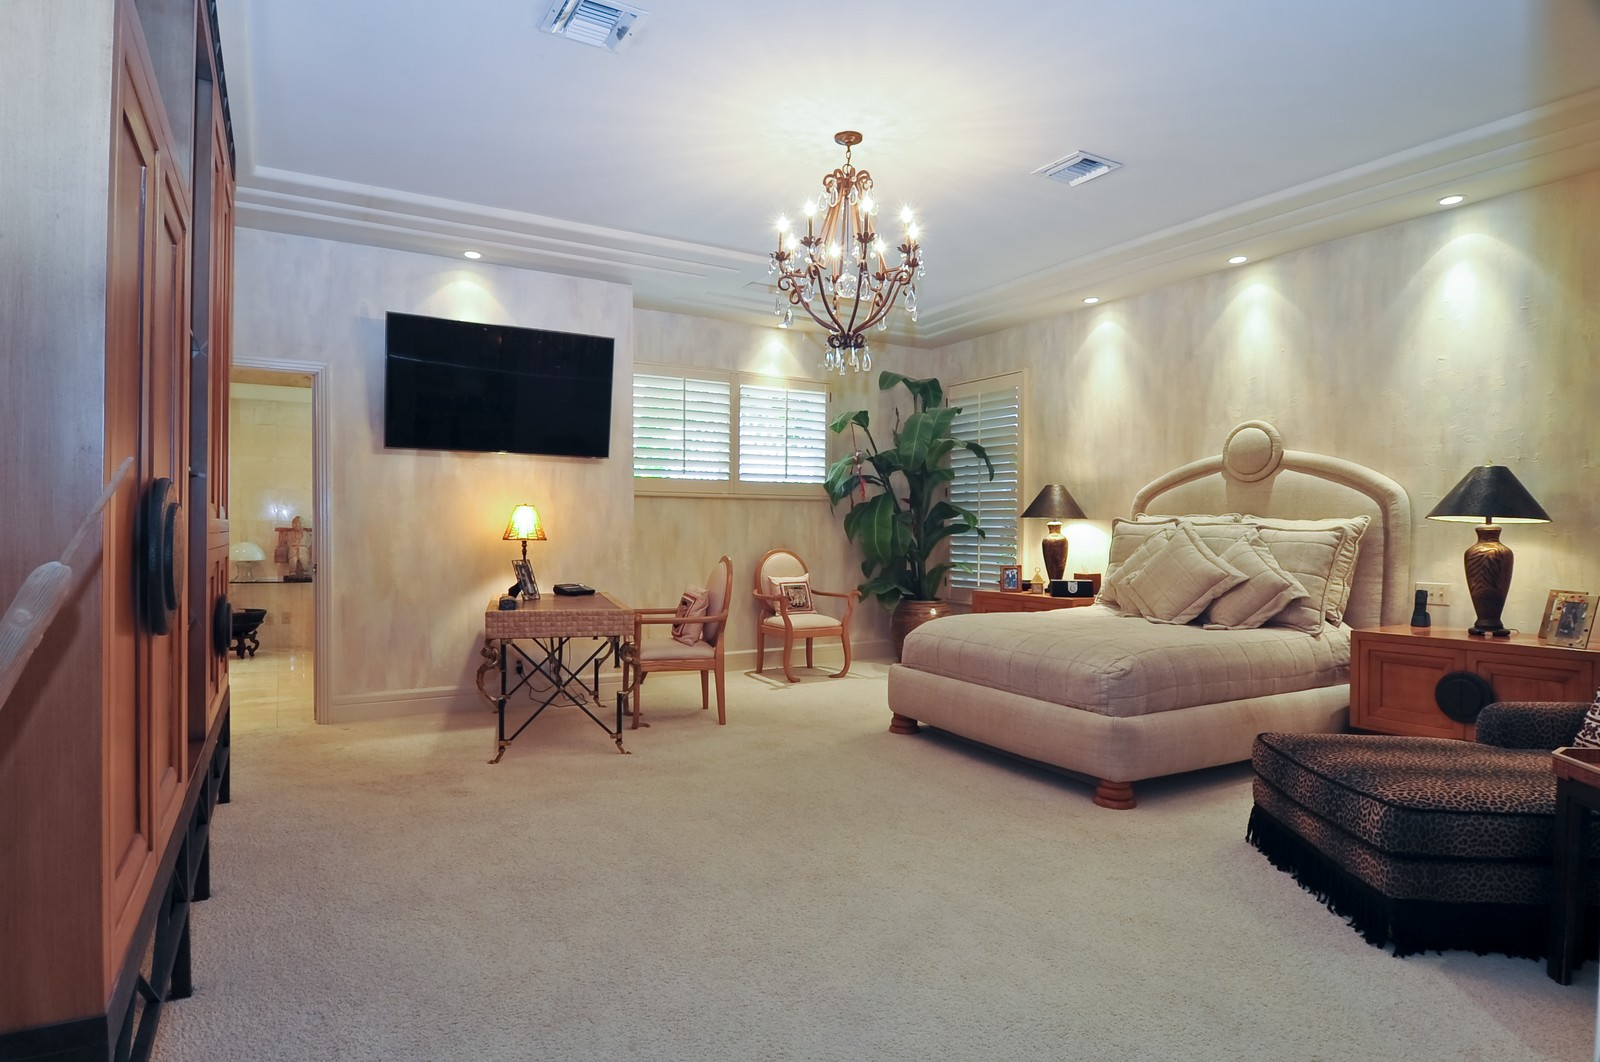 Real Estate Photography - 1510 W 23rd St, Miami Beach, FL, 33140 - Master Bedroom